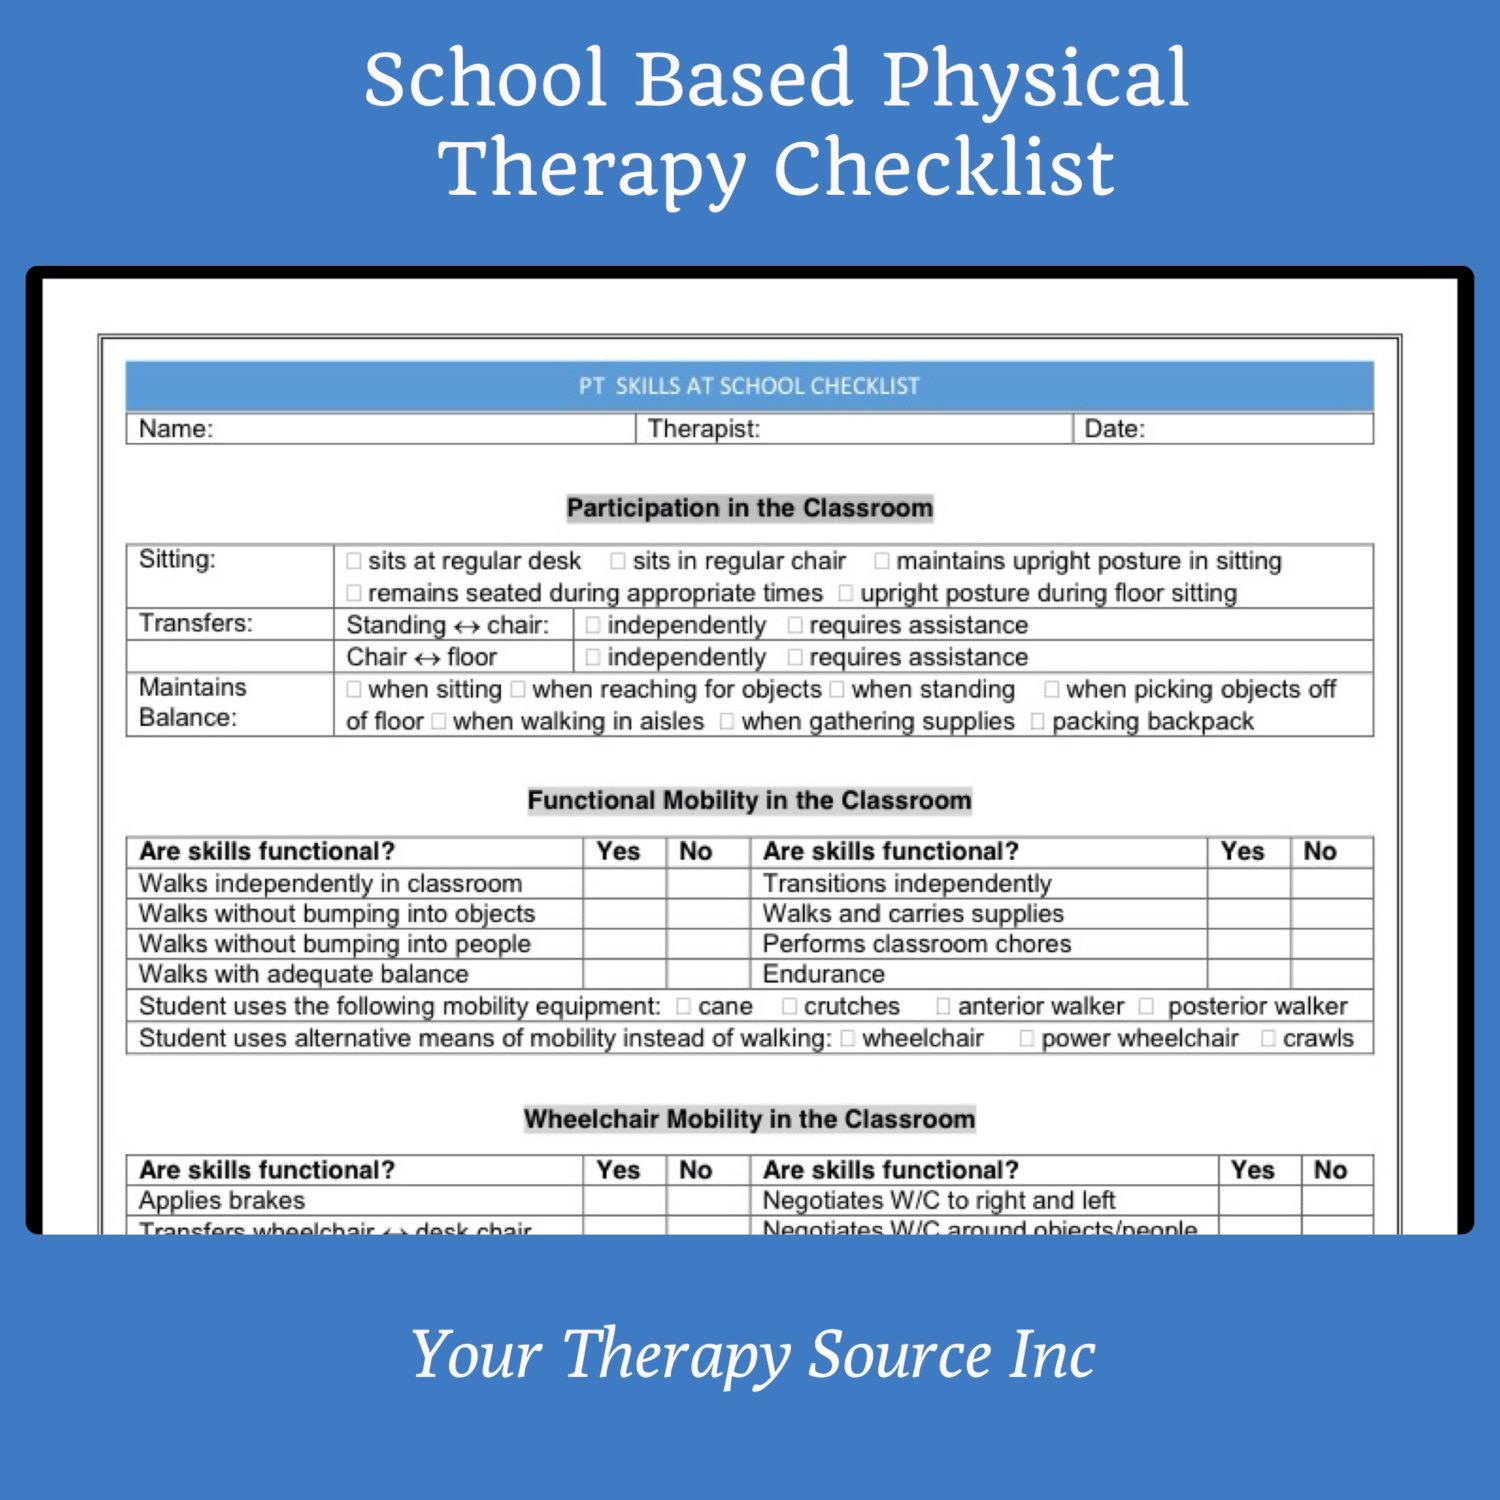 School Based Physical Therapy Checklist Physical therapy